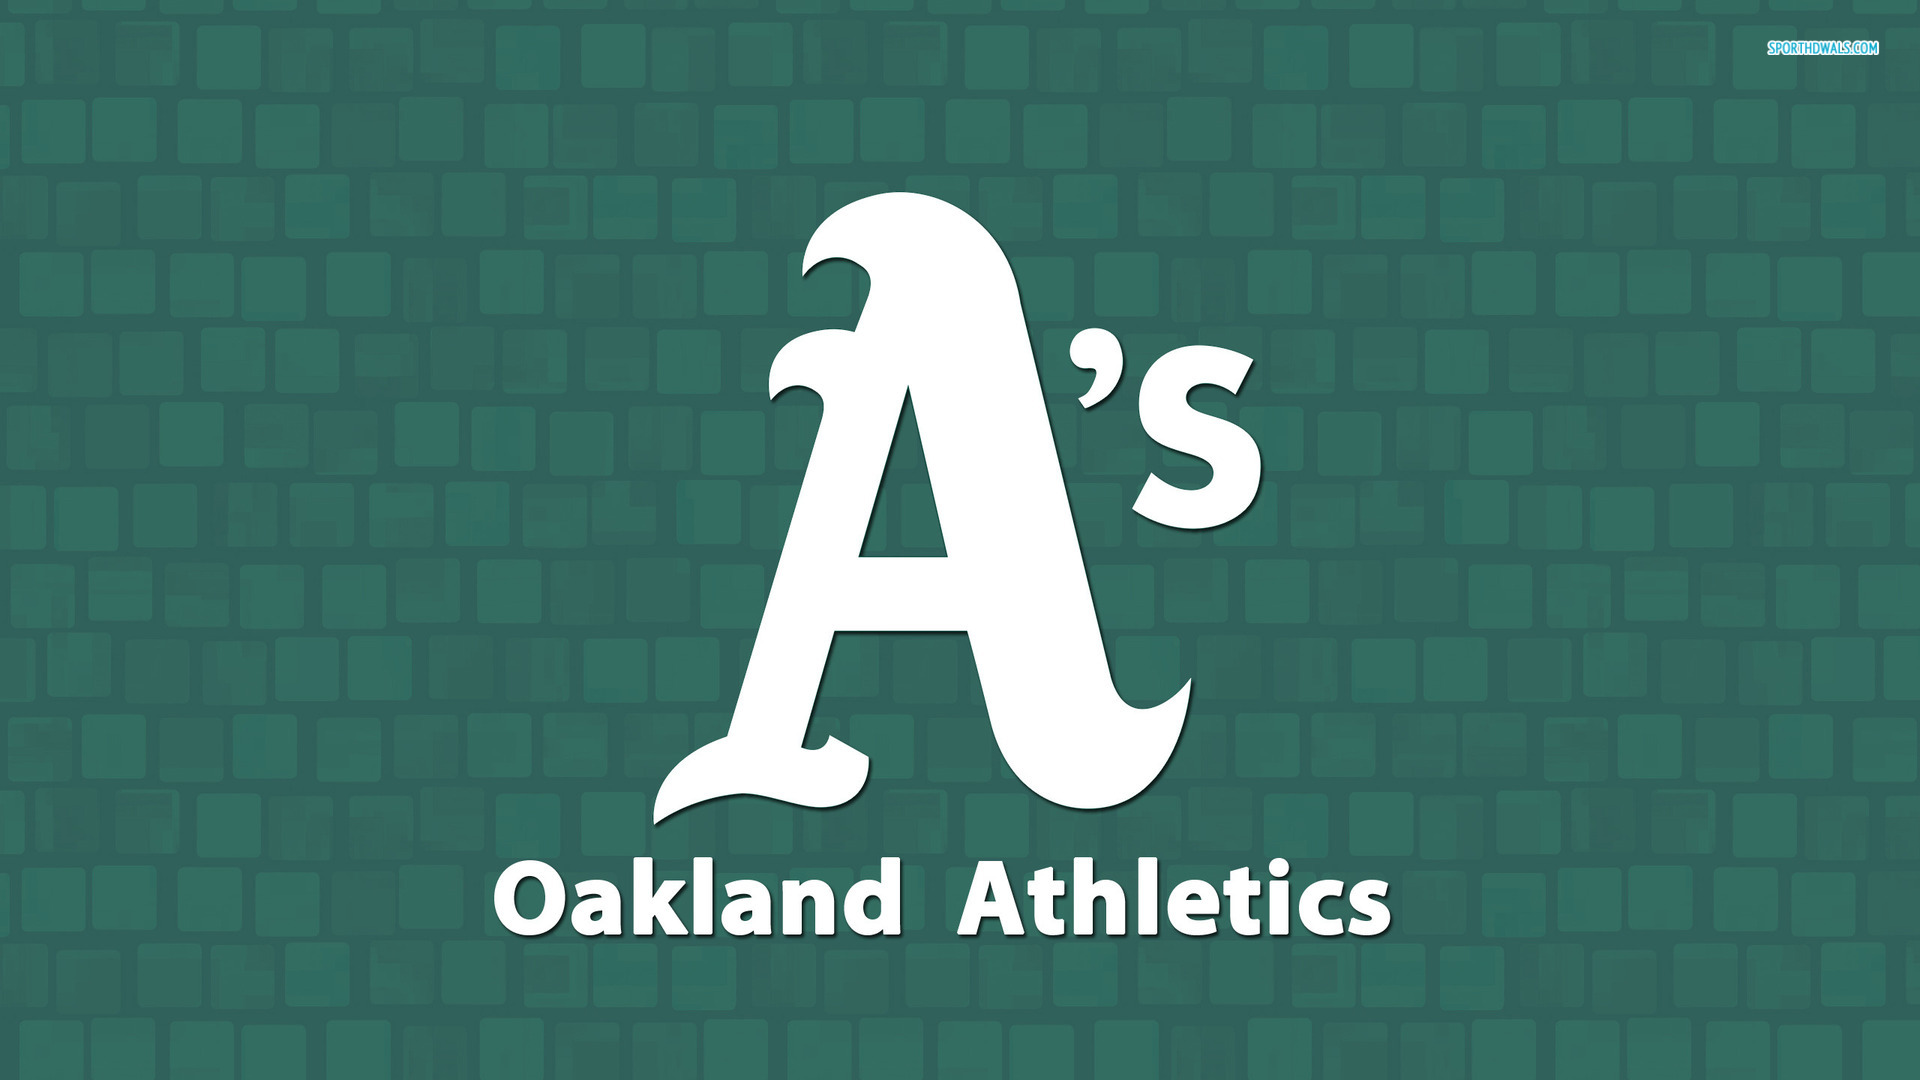 Oakland Athletics wallpaper 1920x1080 69463 1920x1080